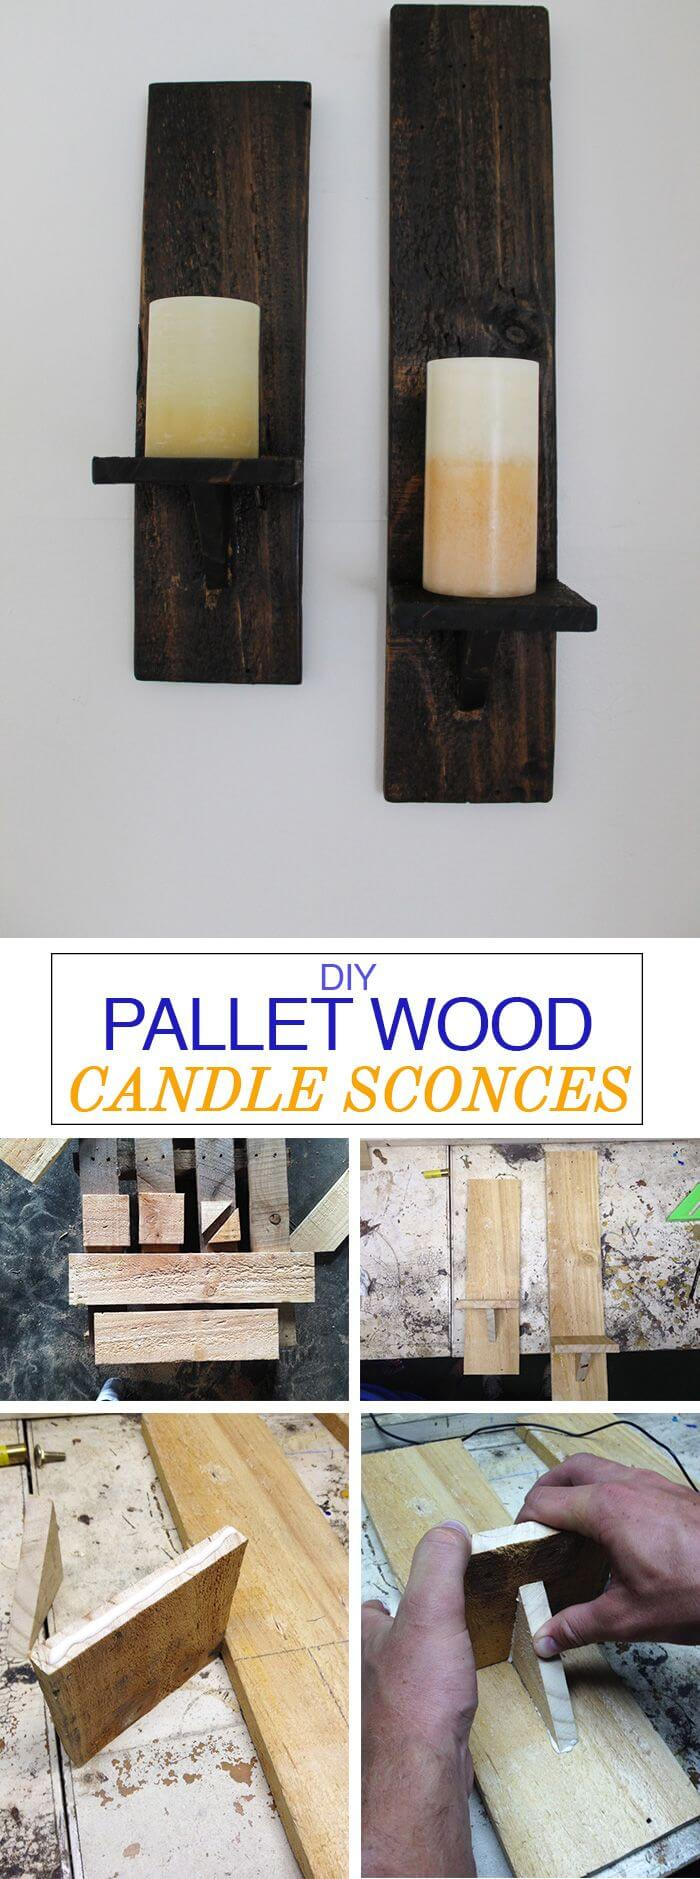 Pallets Make Great Candle Sconces